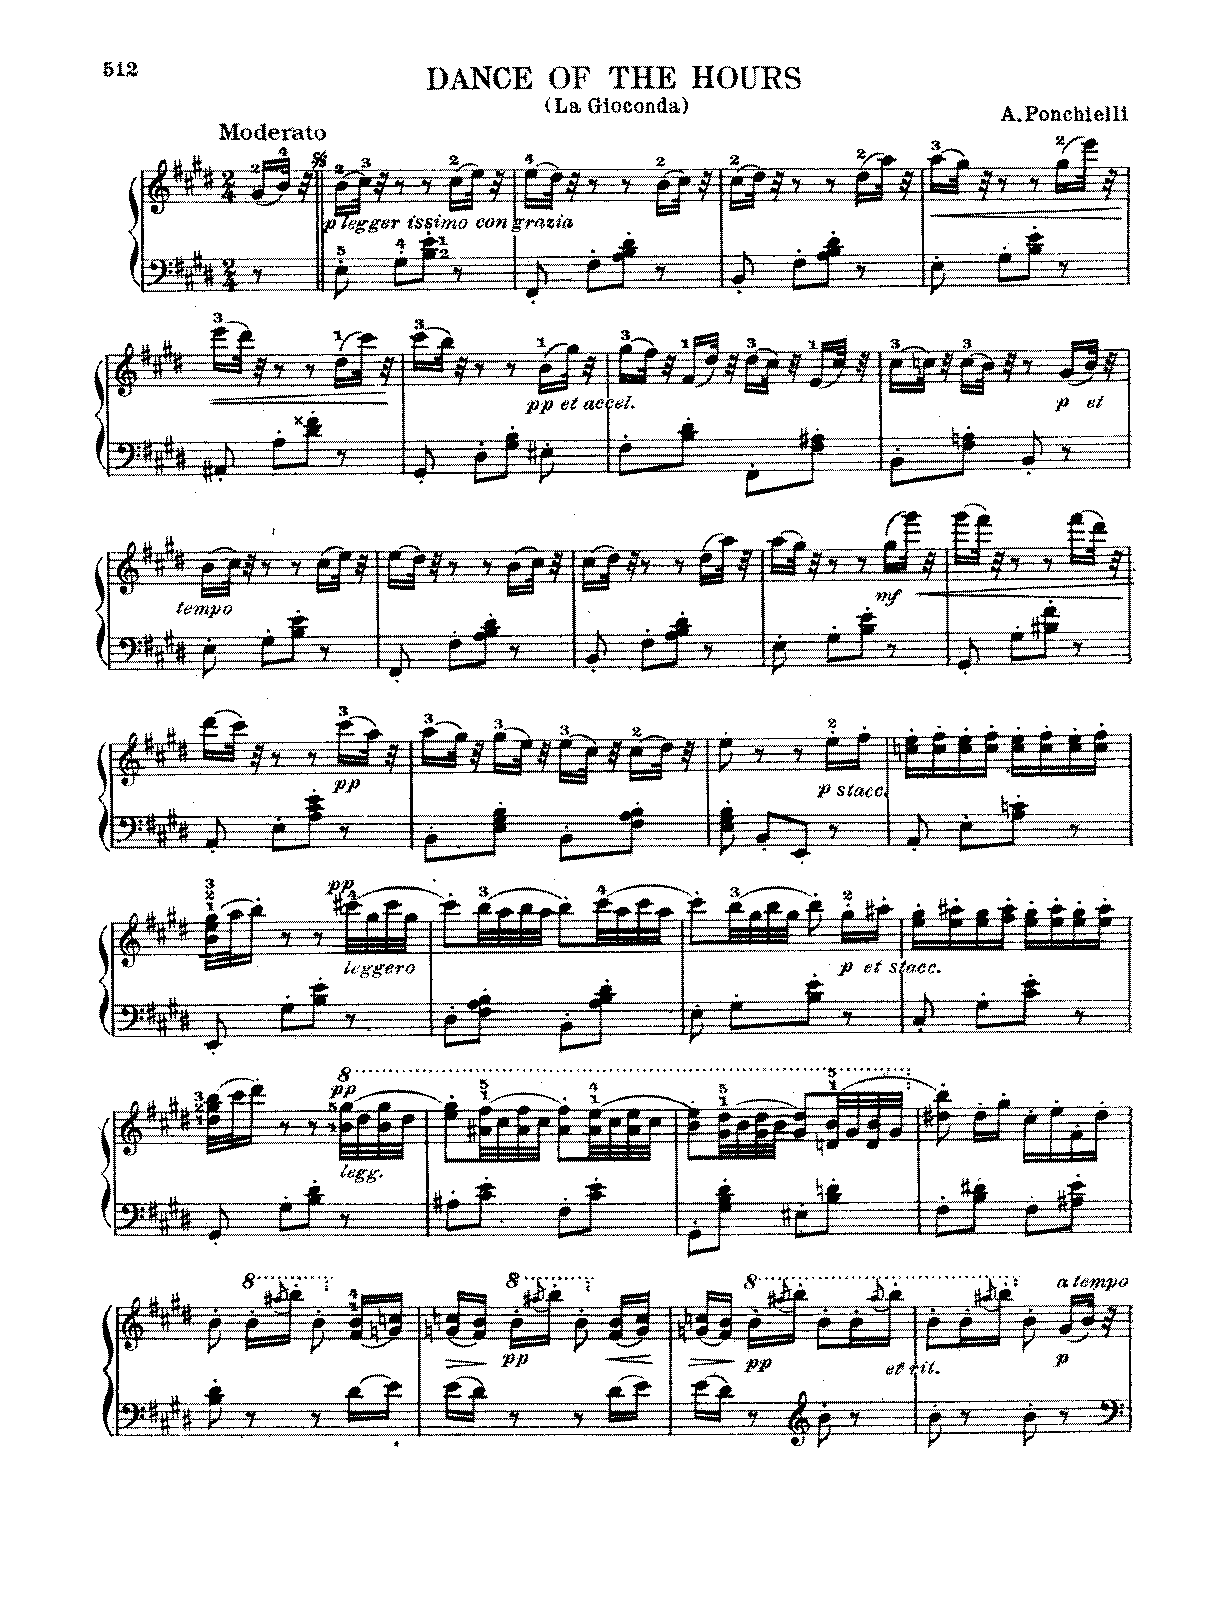 Ponchielli - Dance of the Hours.pdf